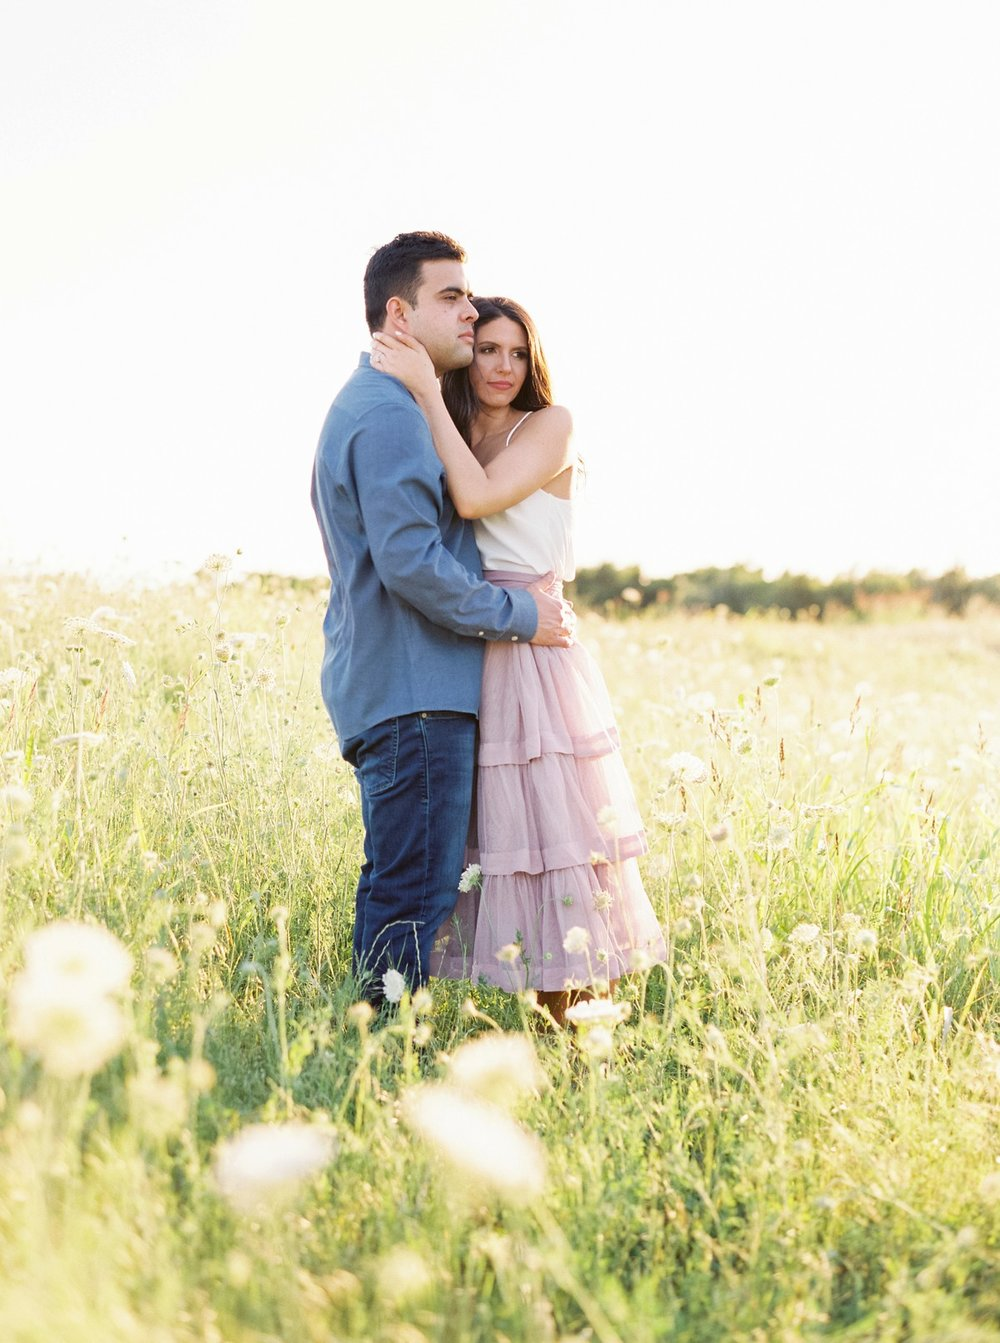 Dallas Wedding & Portrait Photographer